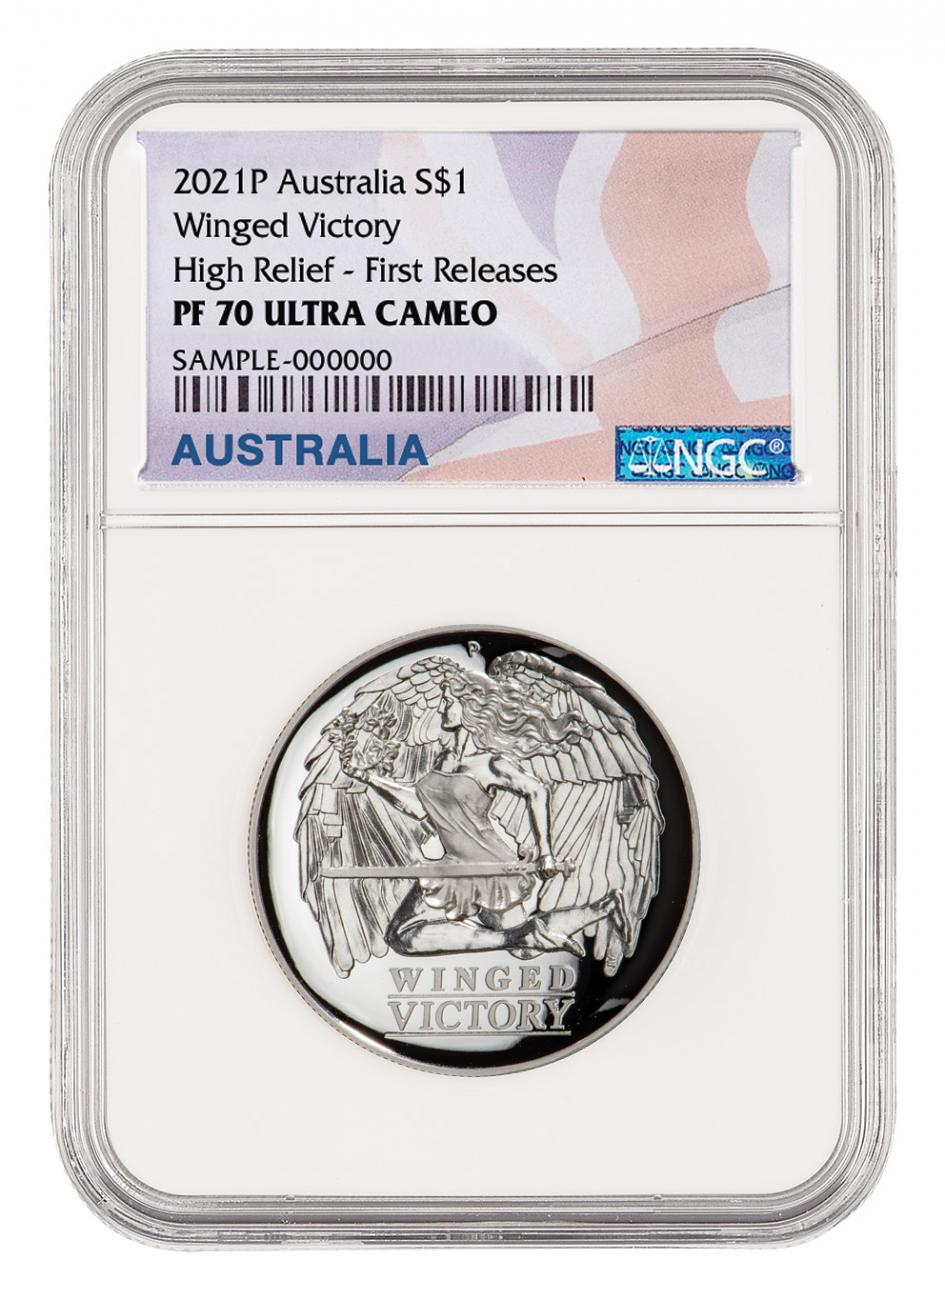 2021 Australia Winged Victory High Relief 1 oz Silver Proof $1 Coin NGC PF70 UC OGP Australia Flag Label